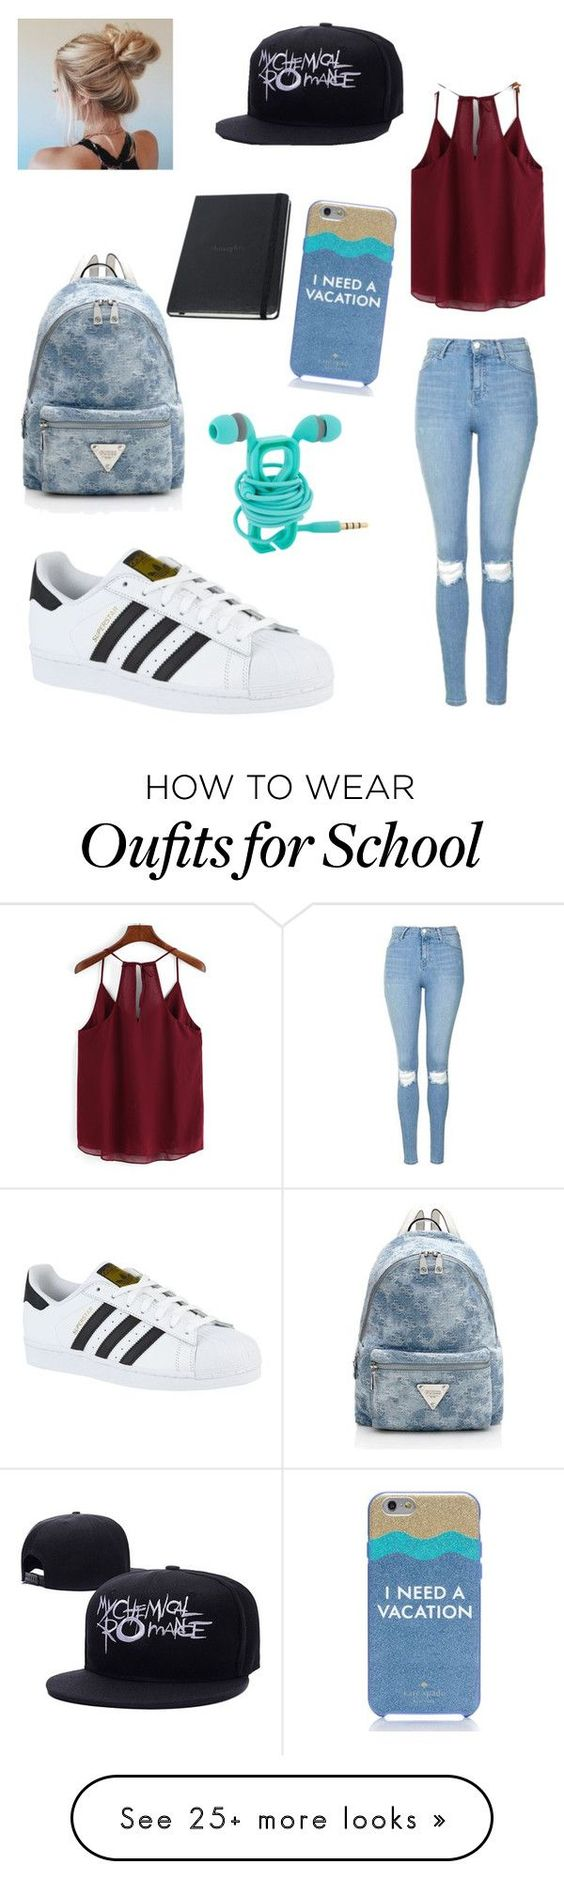 """""""School"""" by asexualkilljoy on Polyvore featuring Topshop, adidas and Kate Spade"""